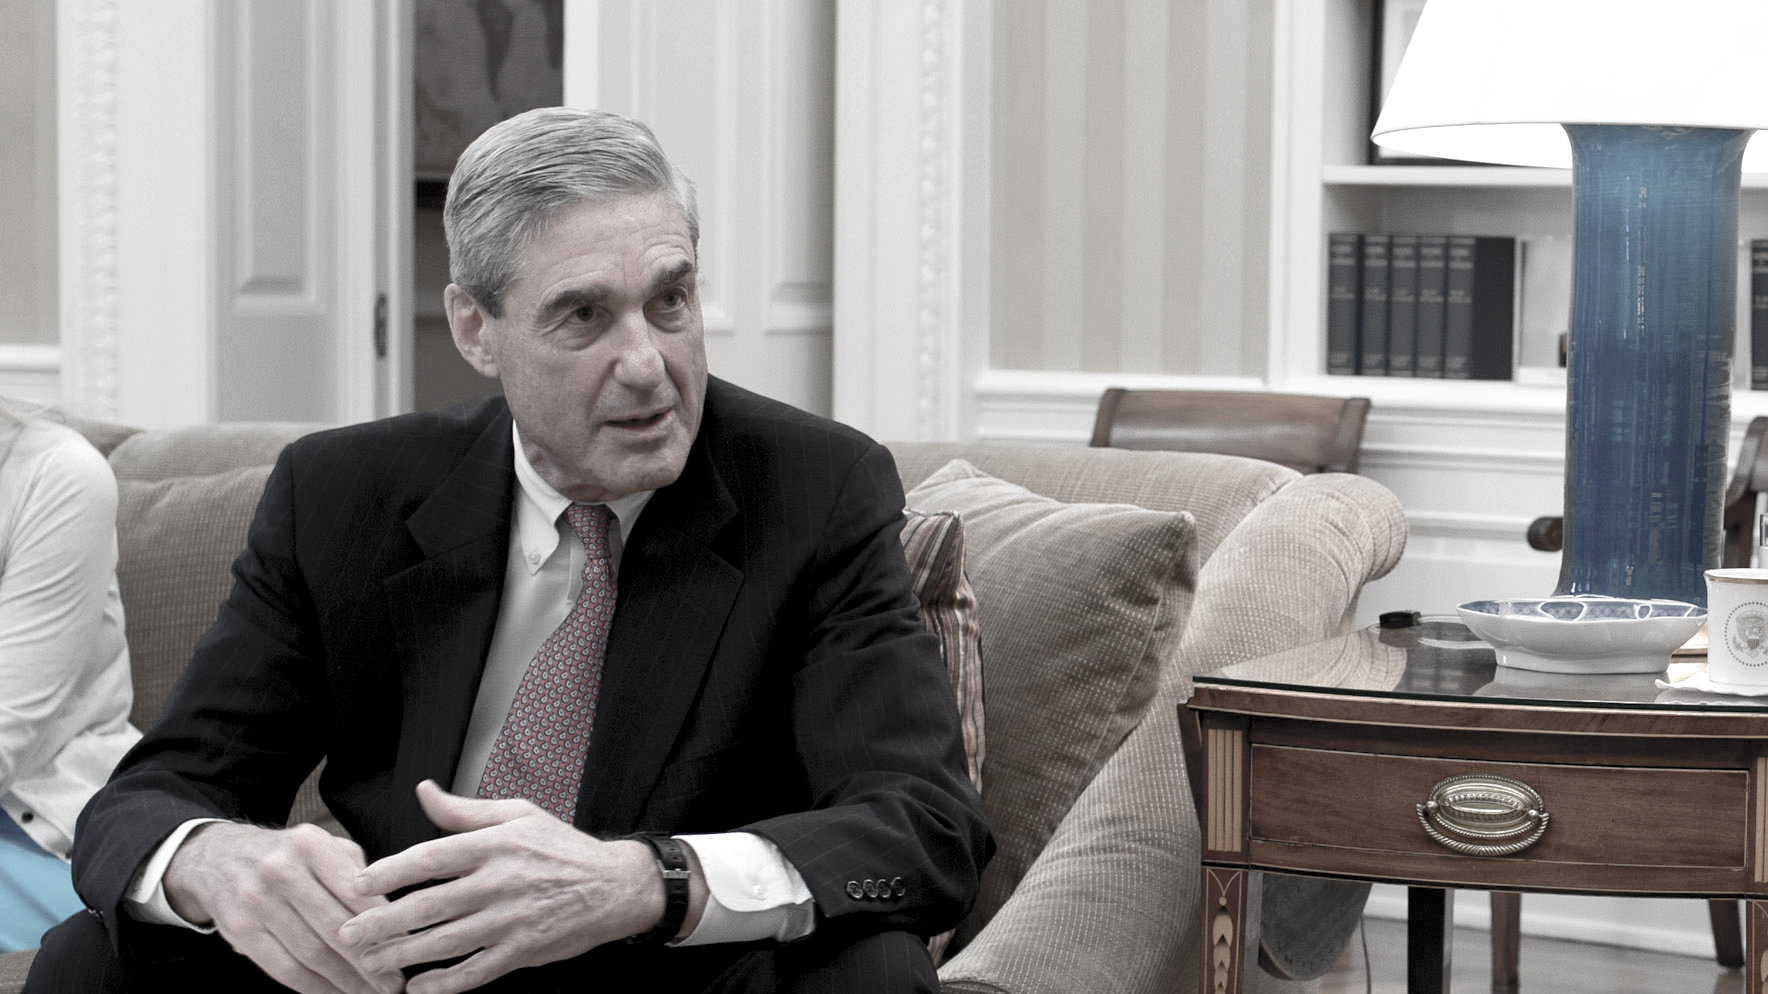 Let Us Read the Mueller Report - The Jefferson Watch